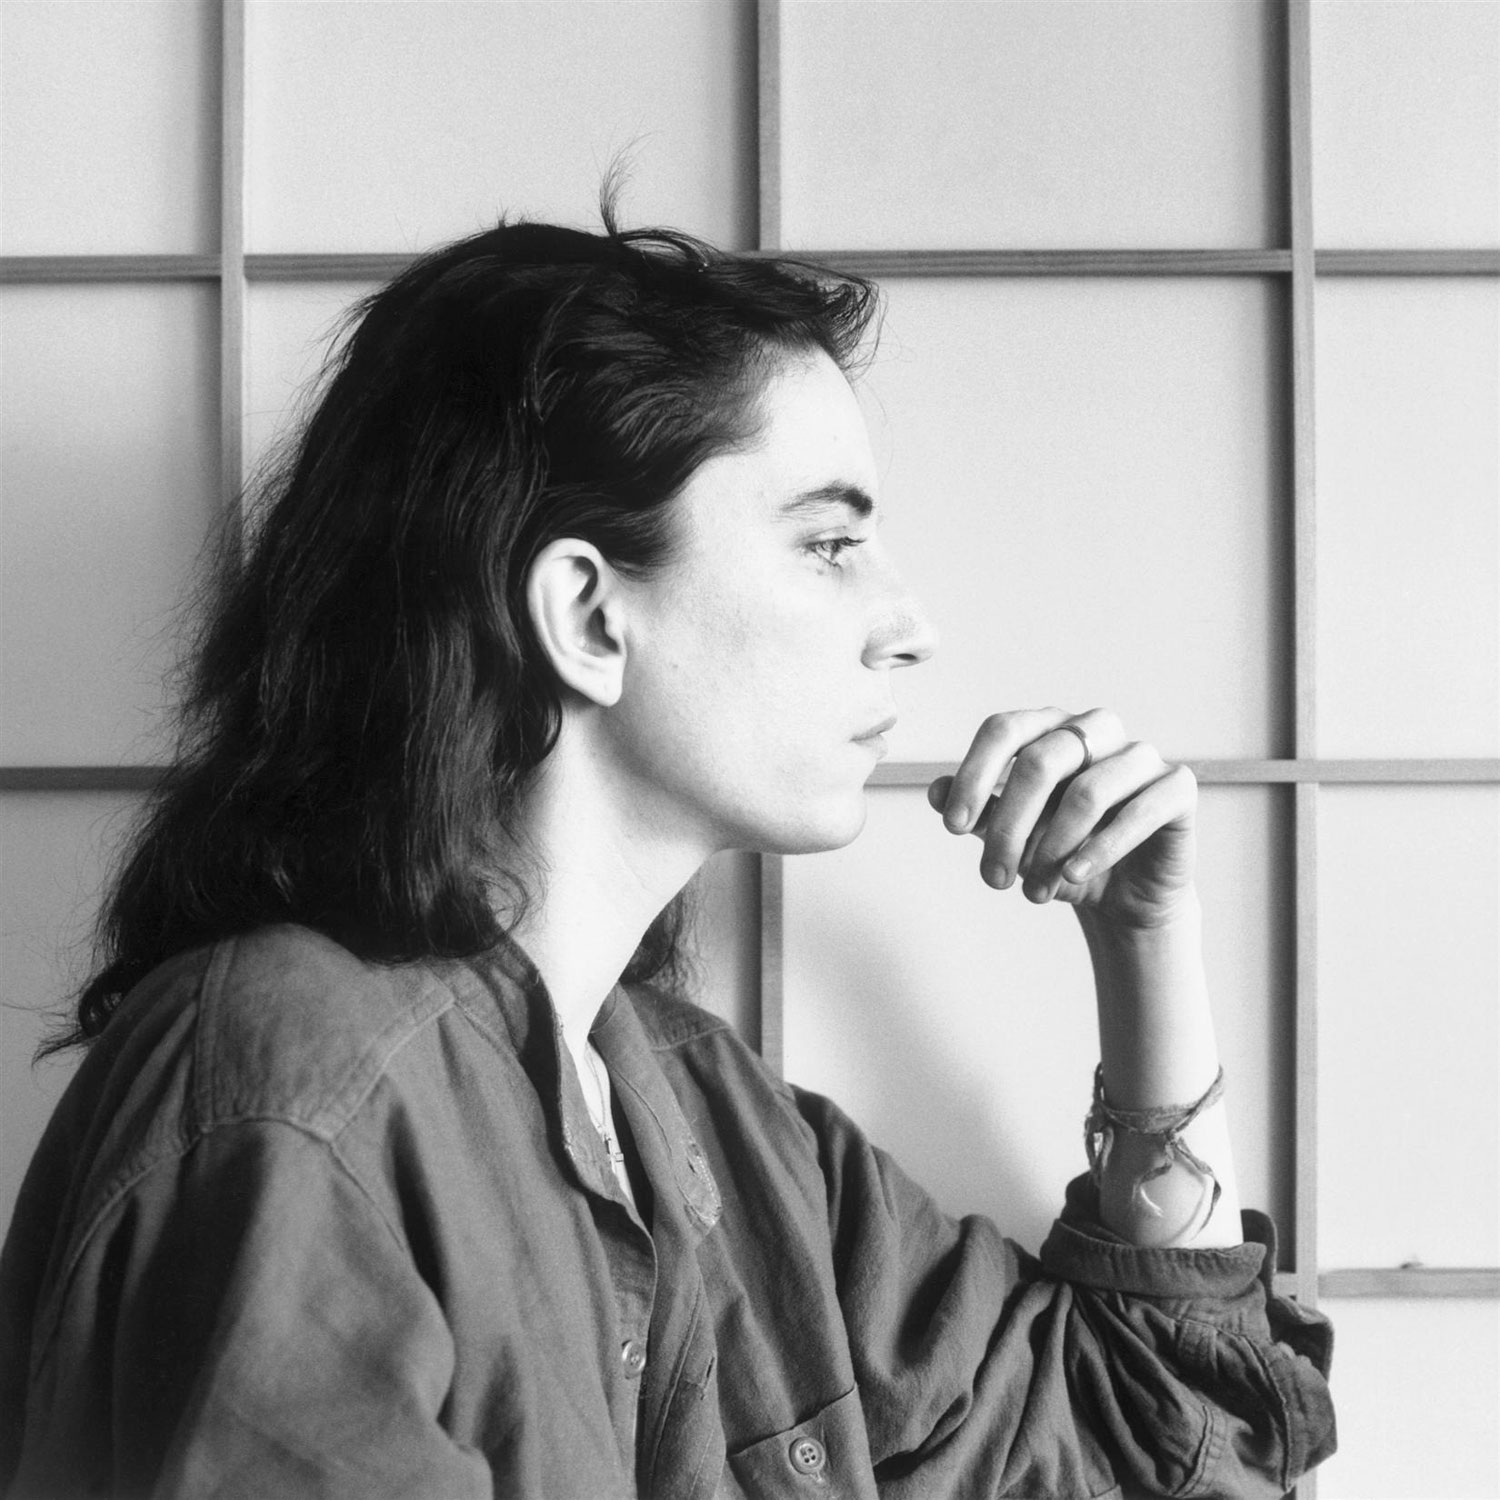 Robert Mapplethorpe's last image of Smith before she withdrew from public life, San Francisco 1979